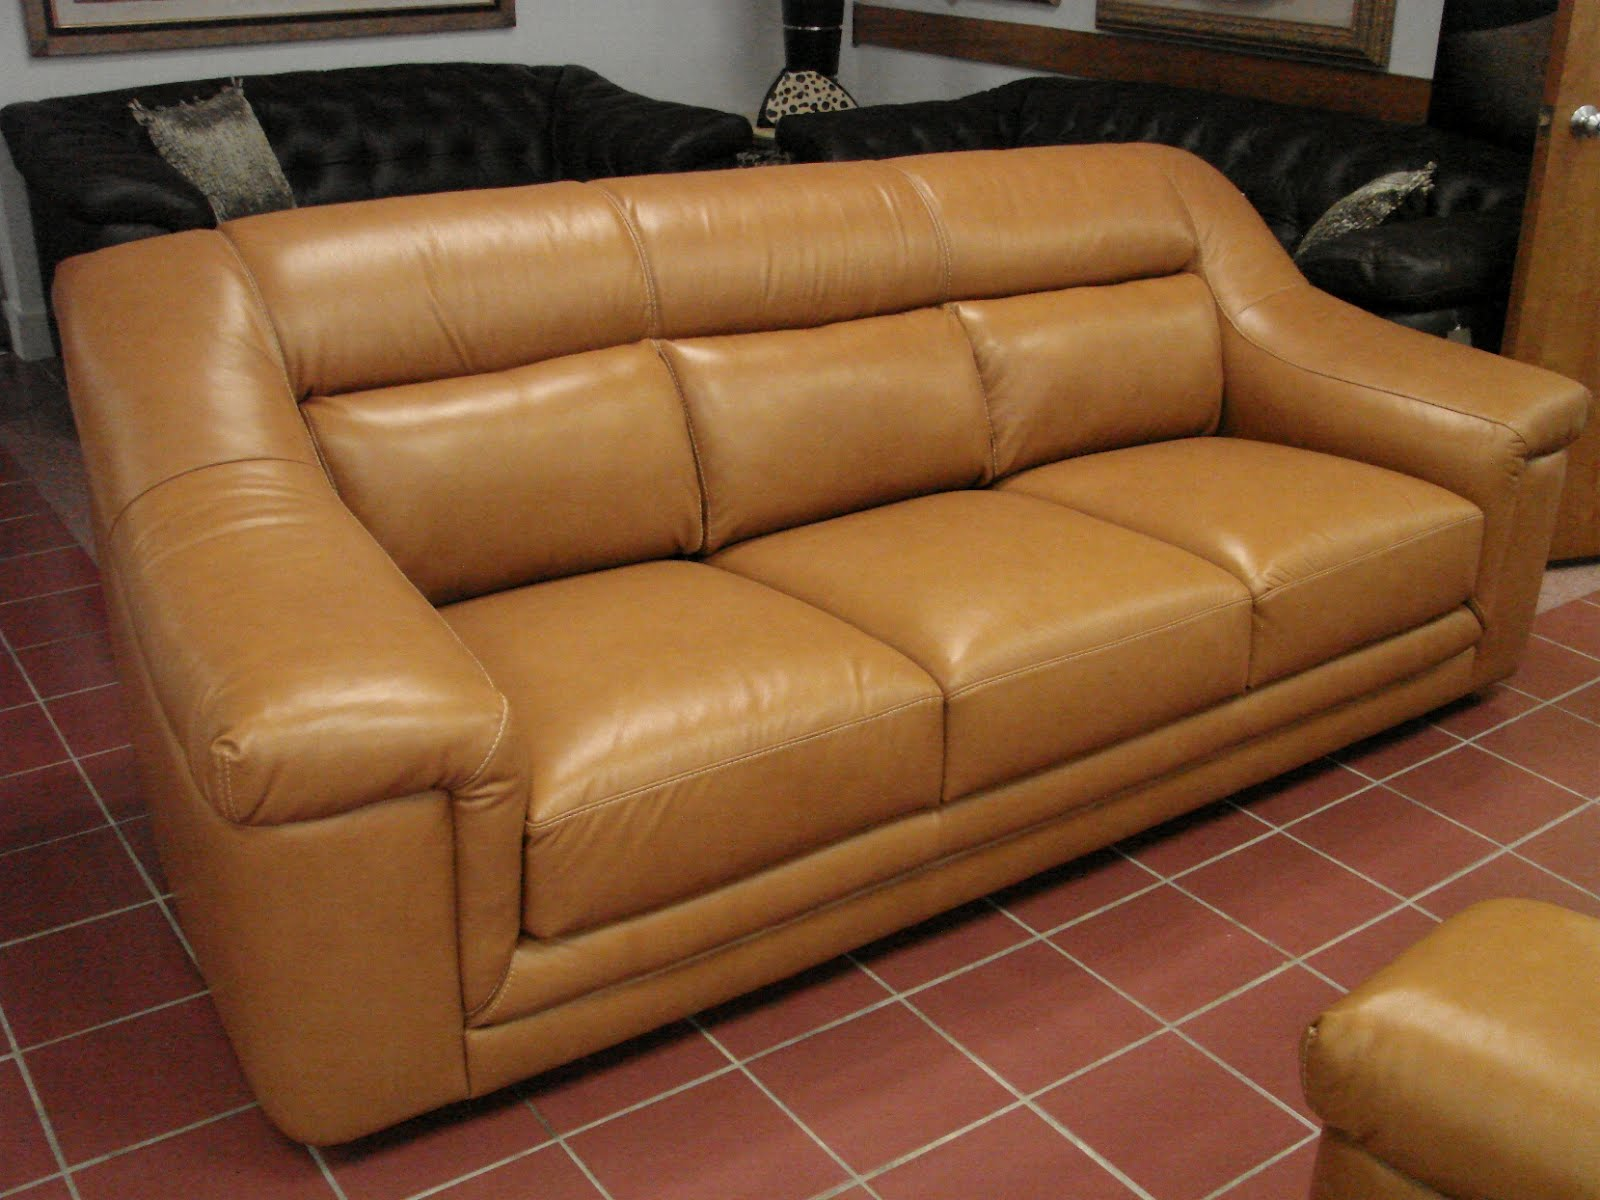 Natuzzi Leather Sofas Sectionals By Interior Concepts Furniture Natuzzi Editons Leather Sofas